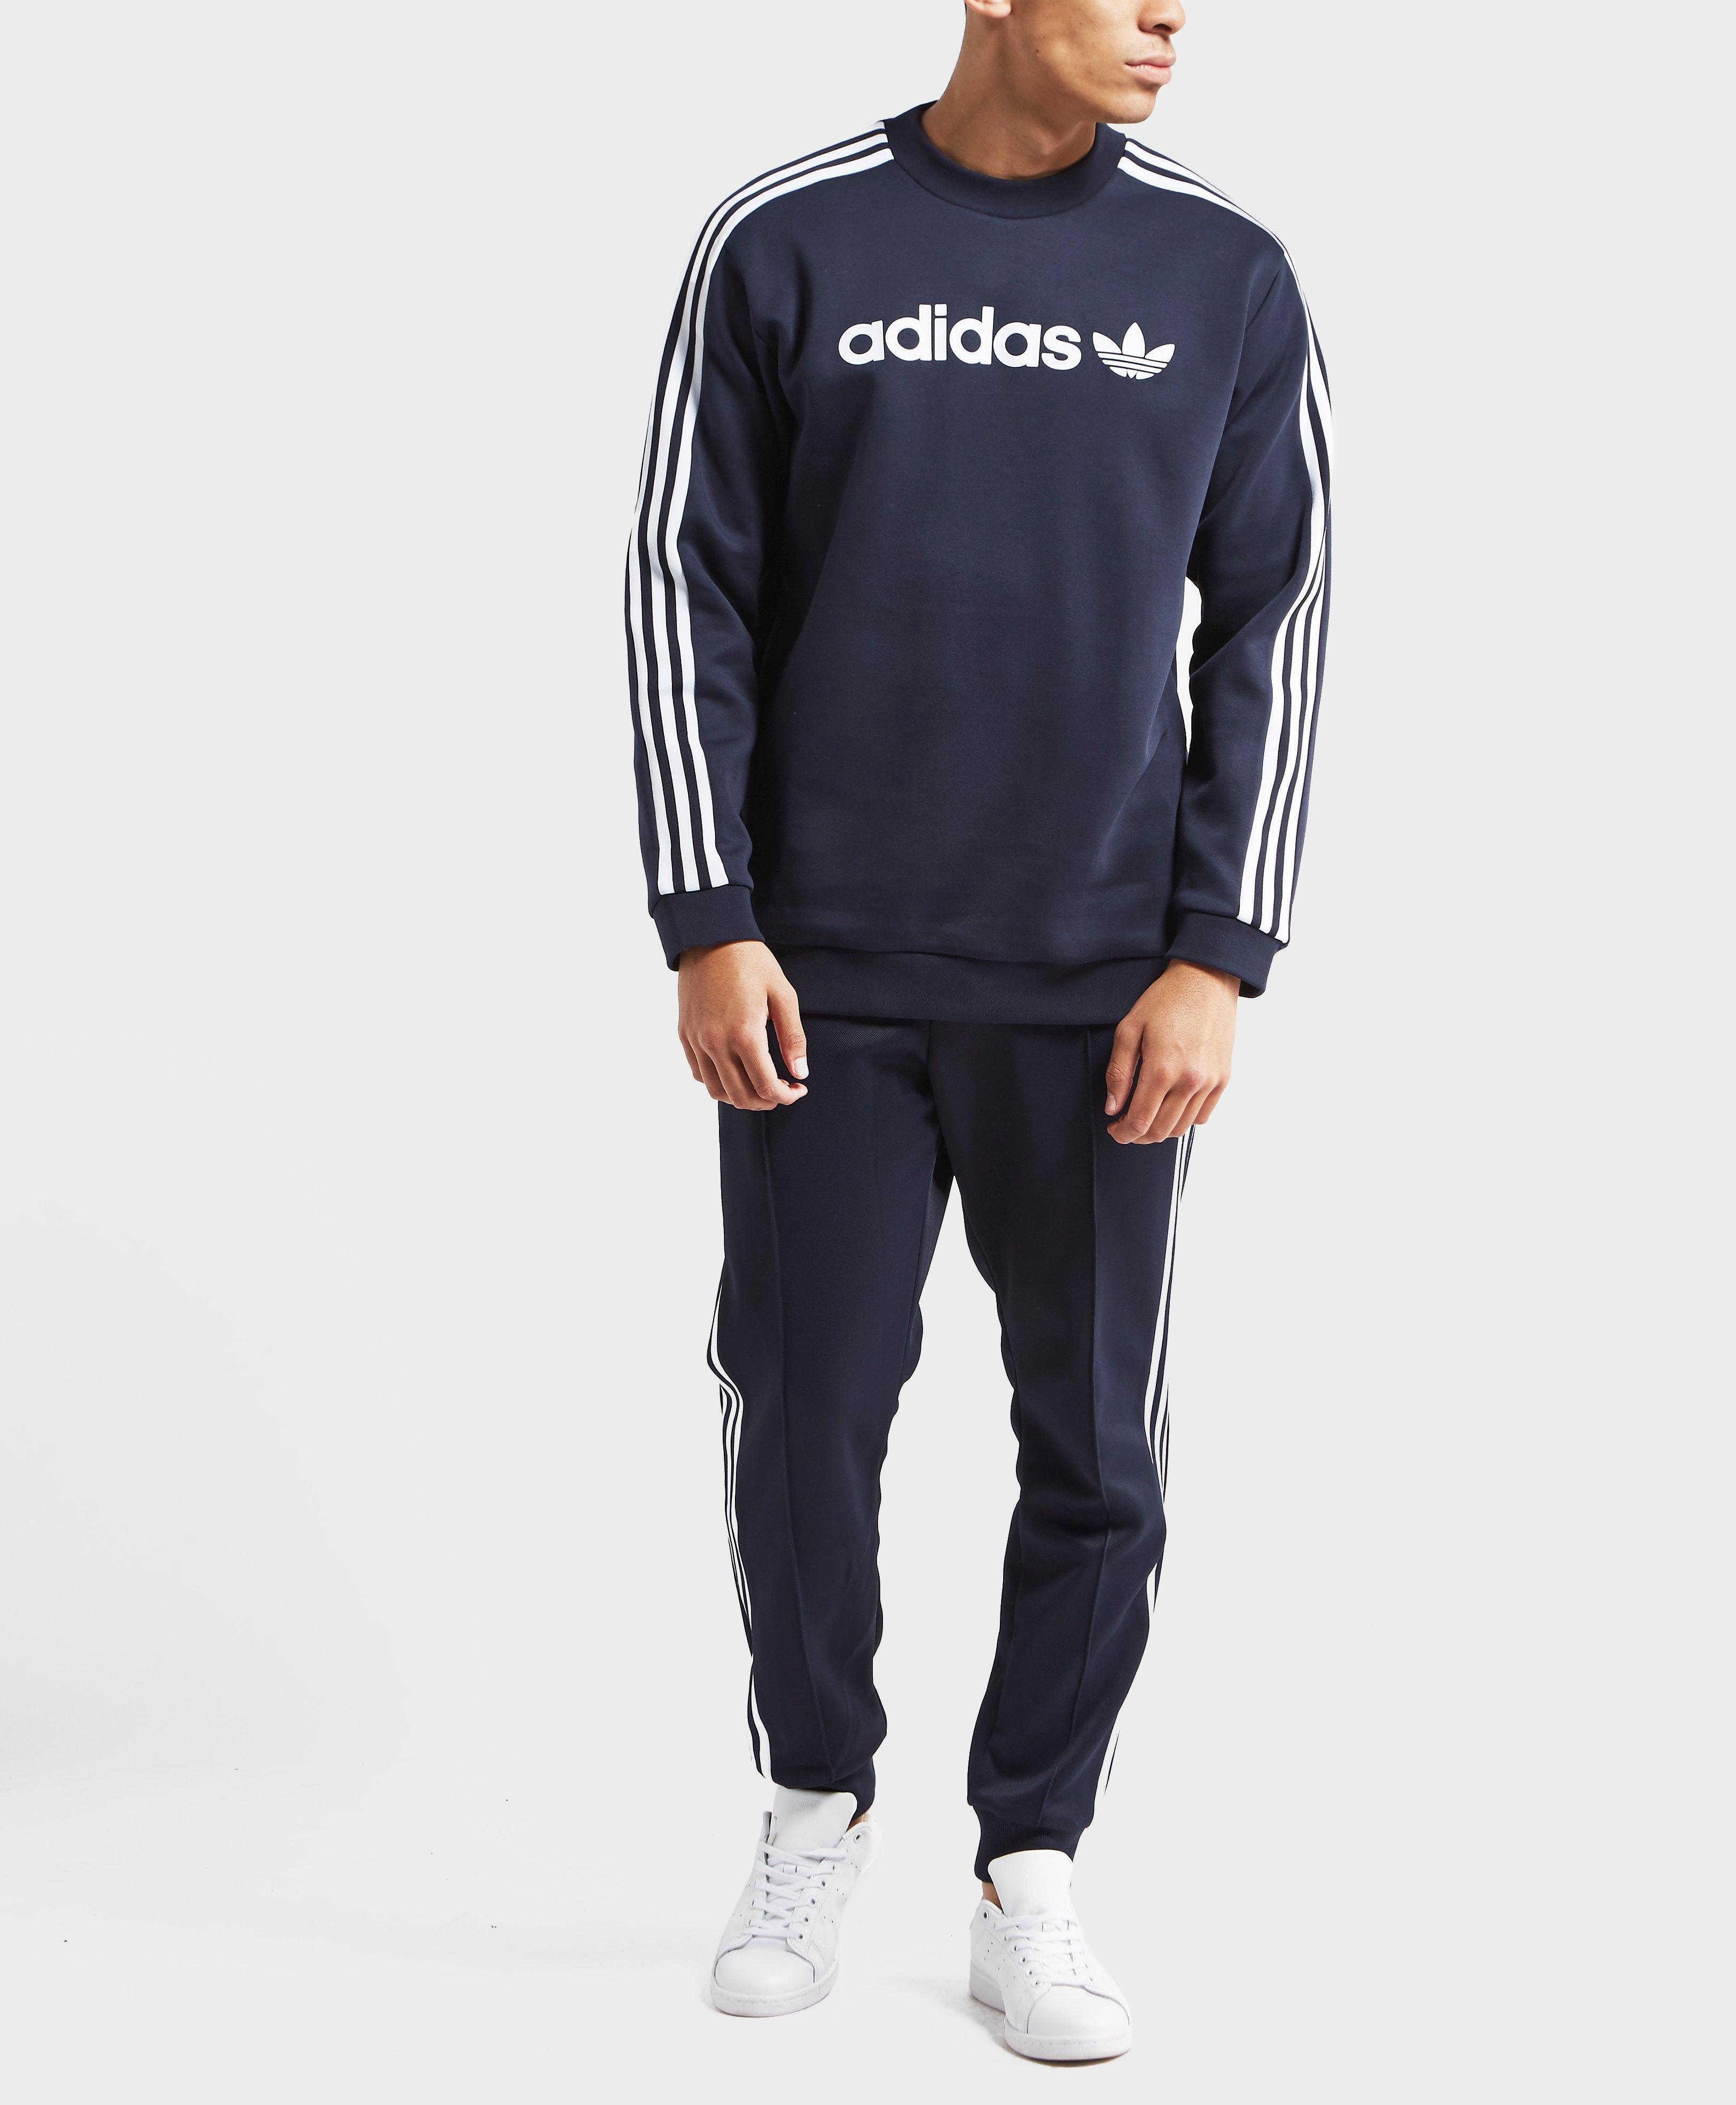 Adidas Originals Blue Linear Trefoil Sweatshirt for men